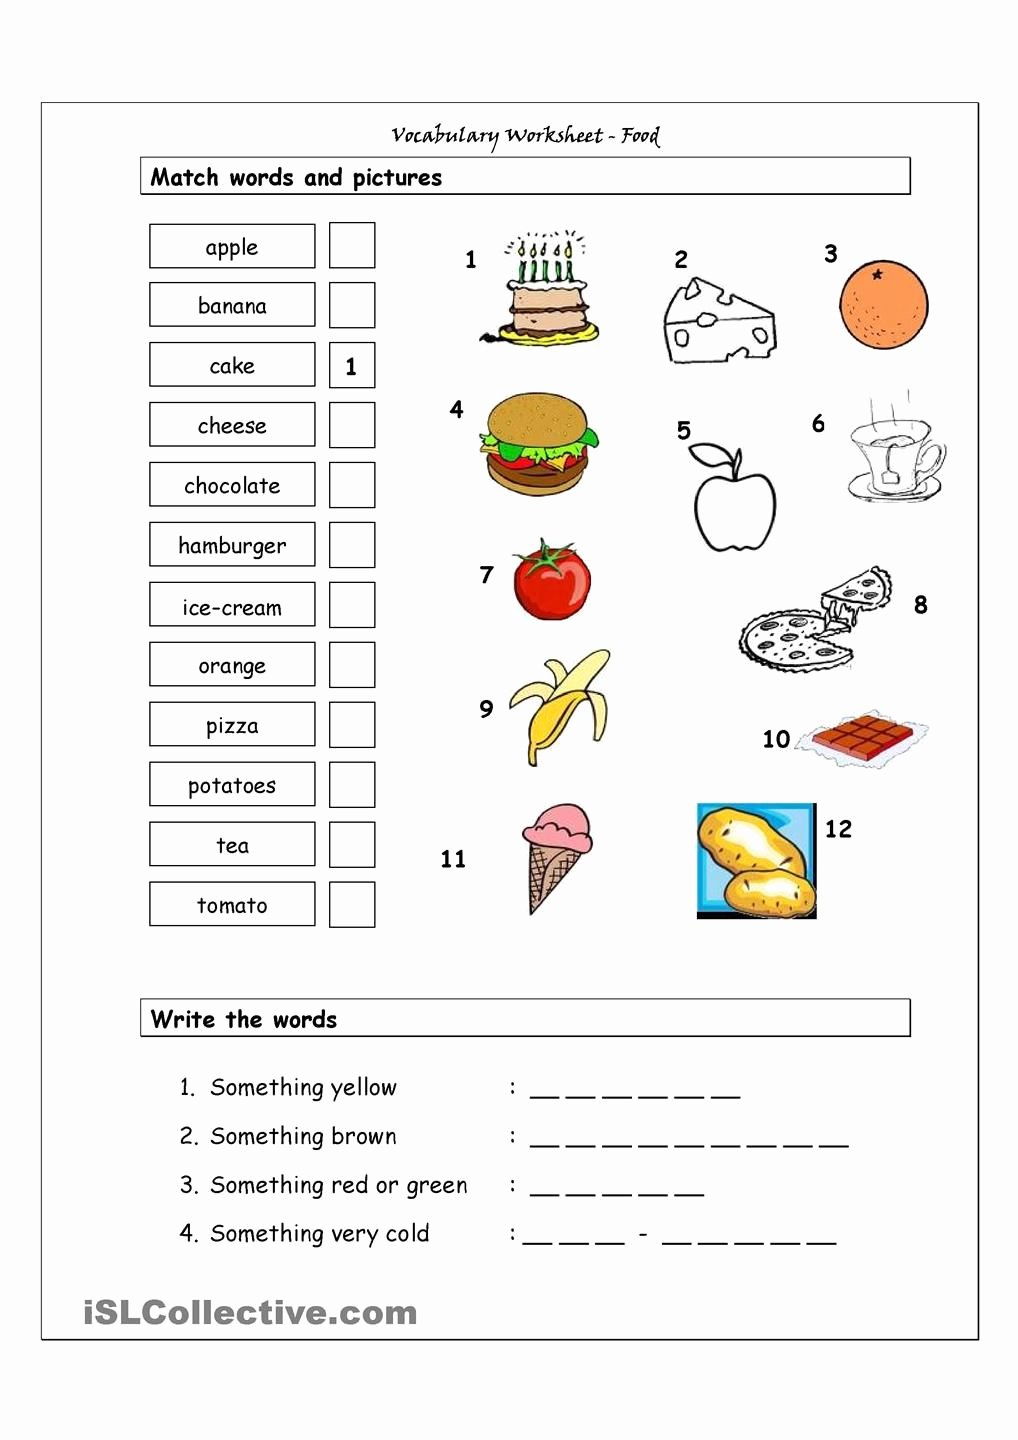 Vocabulary Worksheets for Preschoolers New Vocabulary Matching Worksheet Food